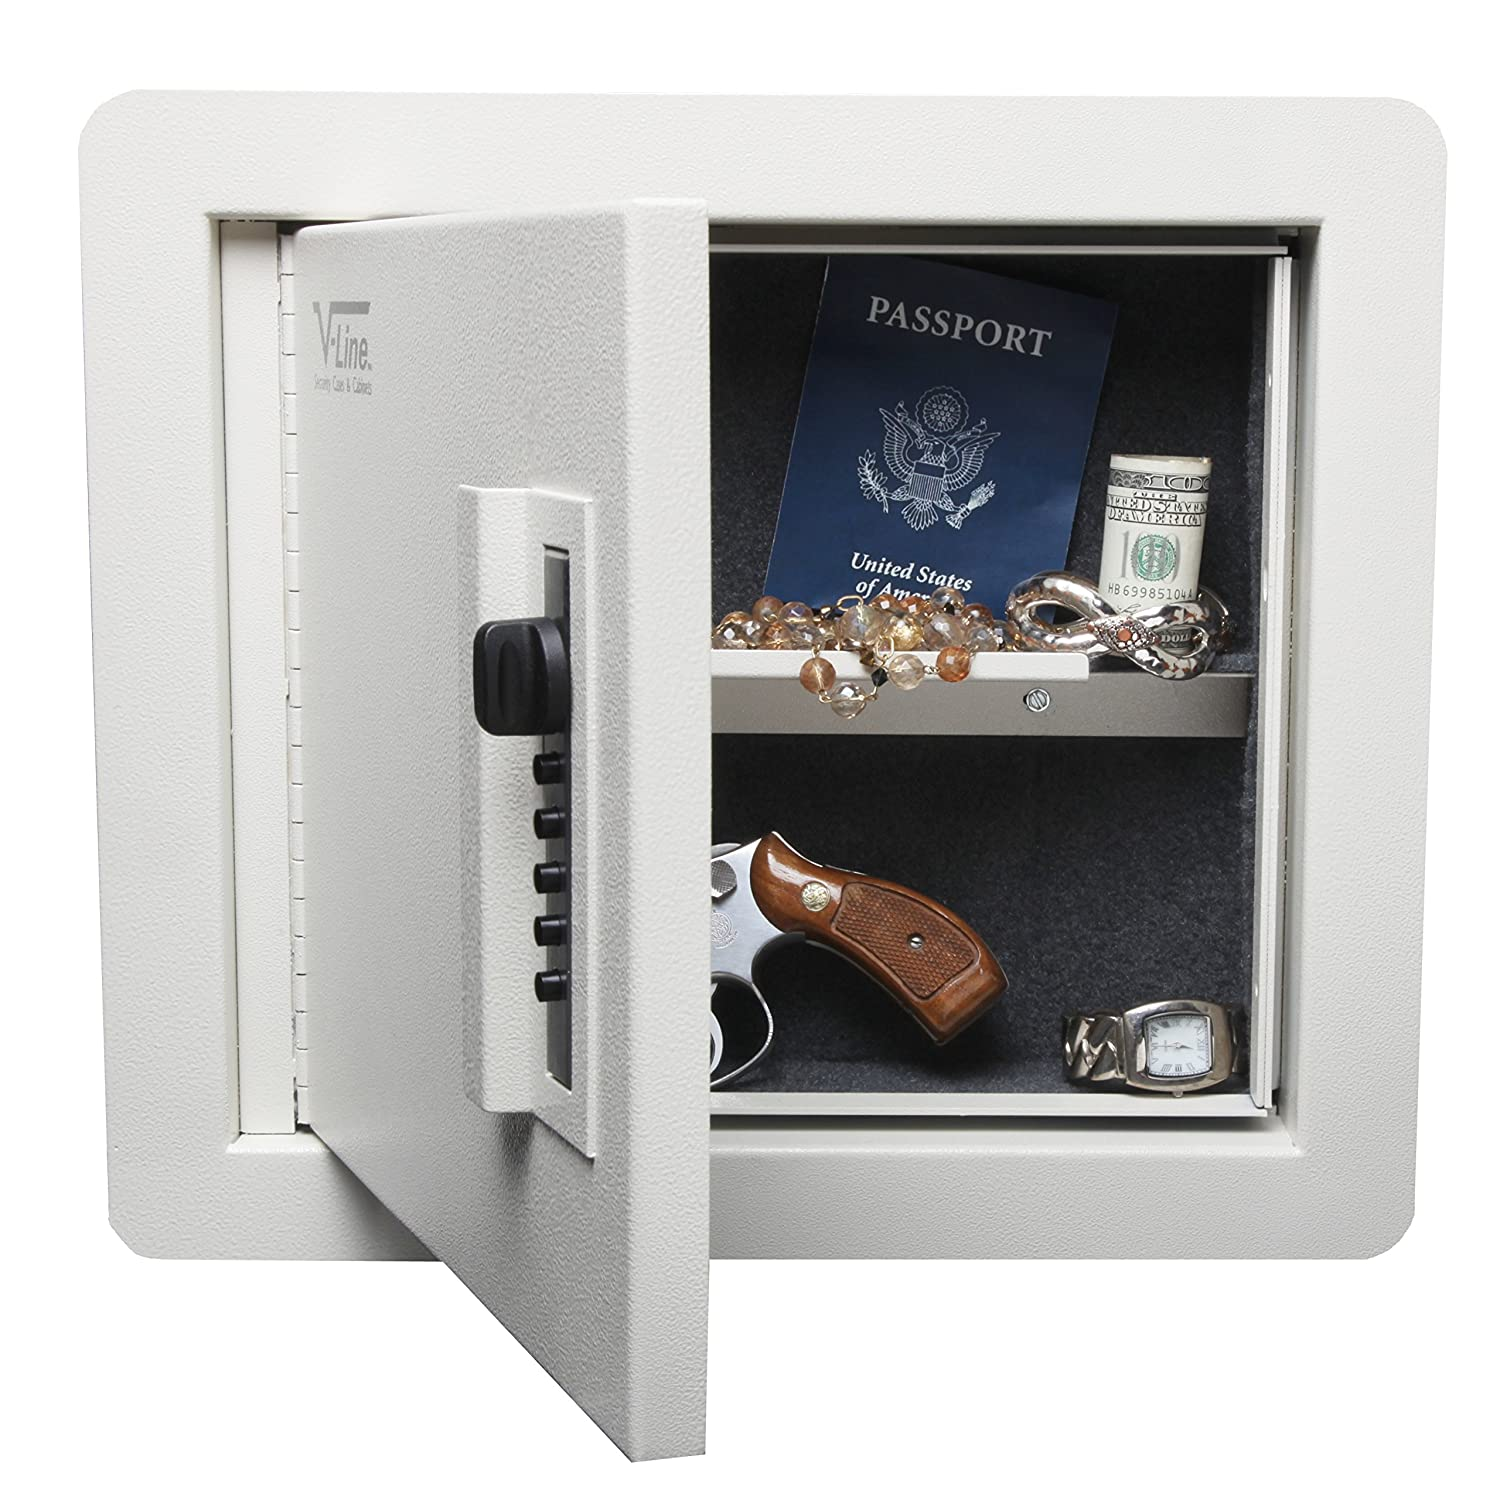 amazoncom vline quick vault locking storage for guns and valuables sports u0026 outdoors